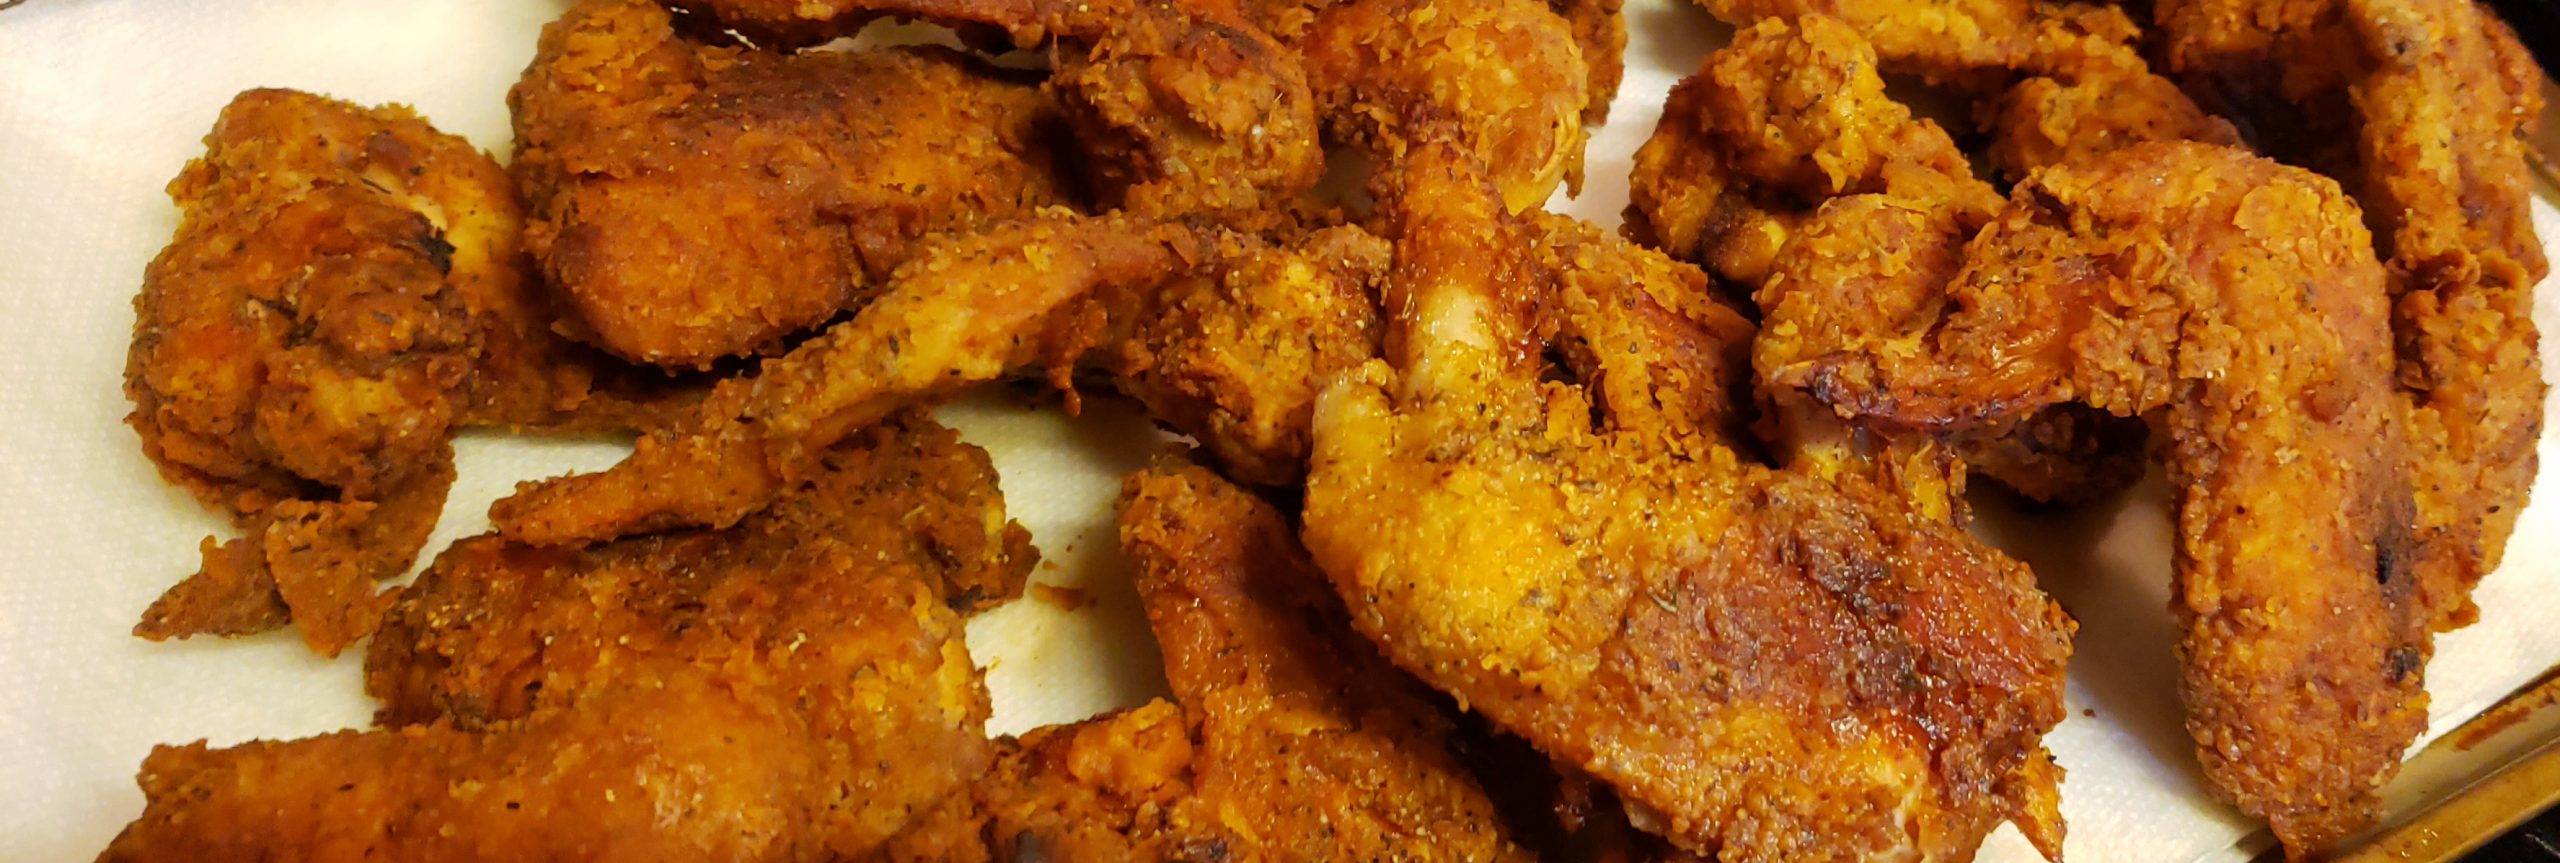 Recipe: Crispy Southern Fried Chicken Wings